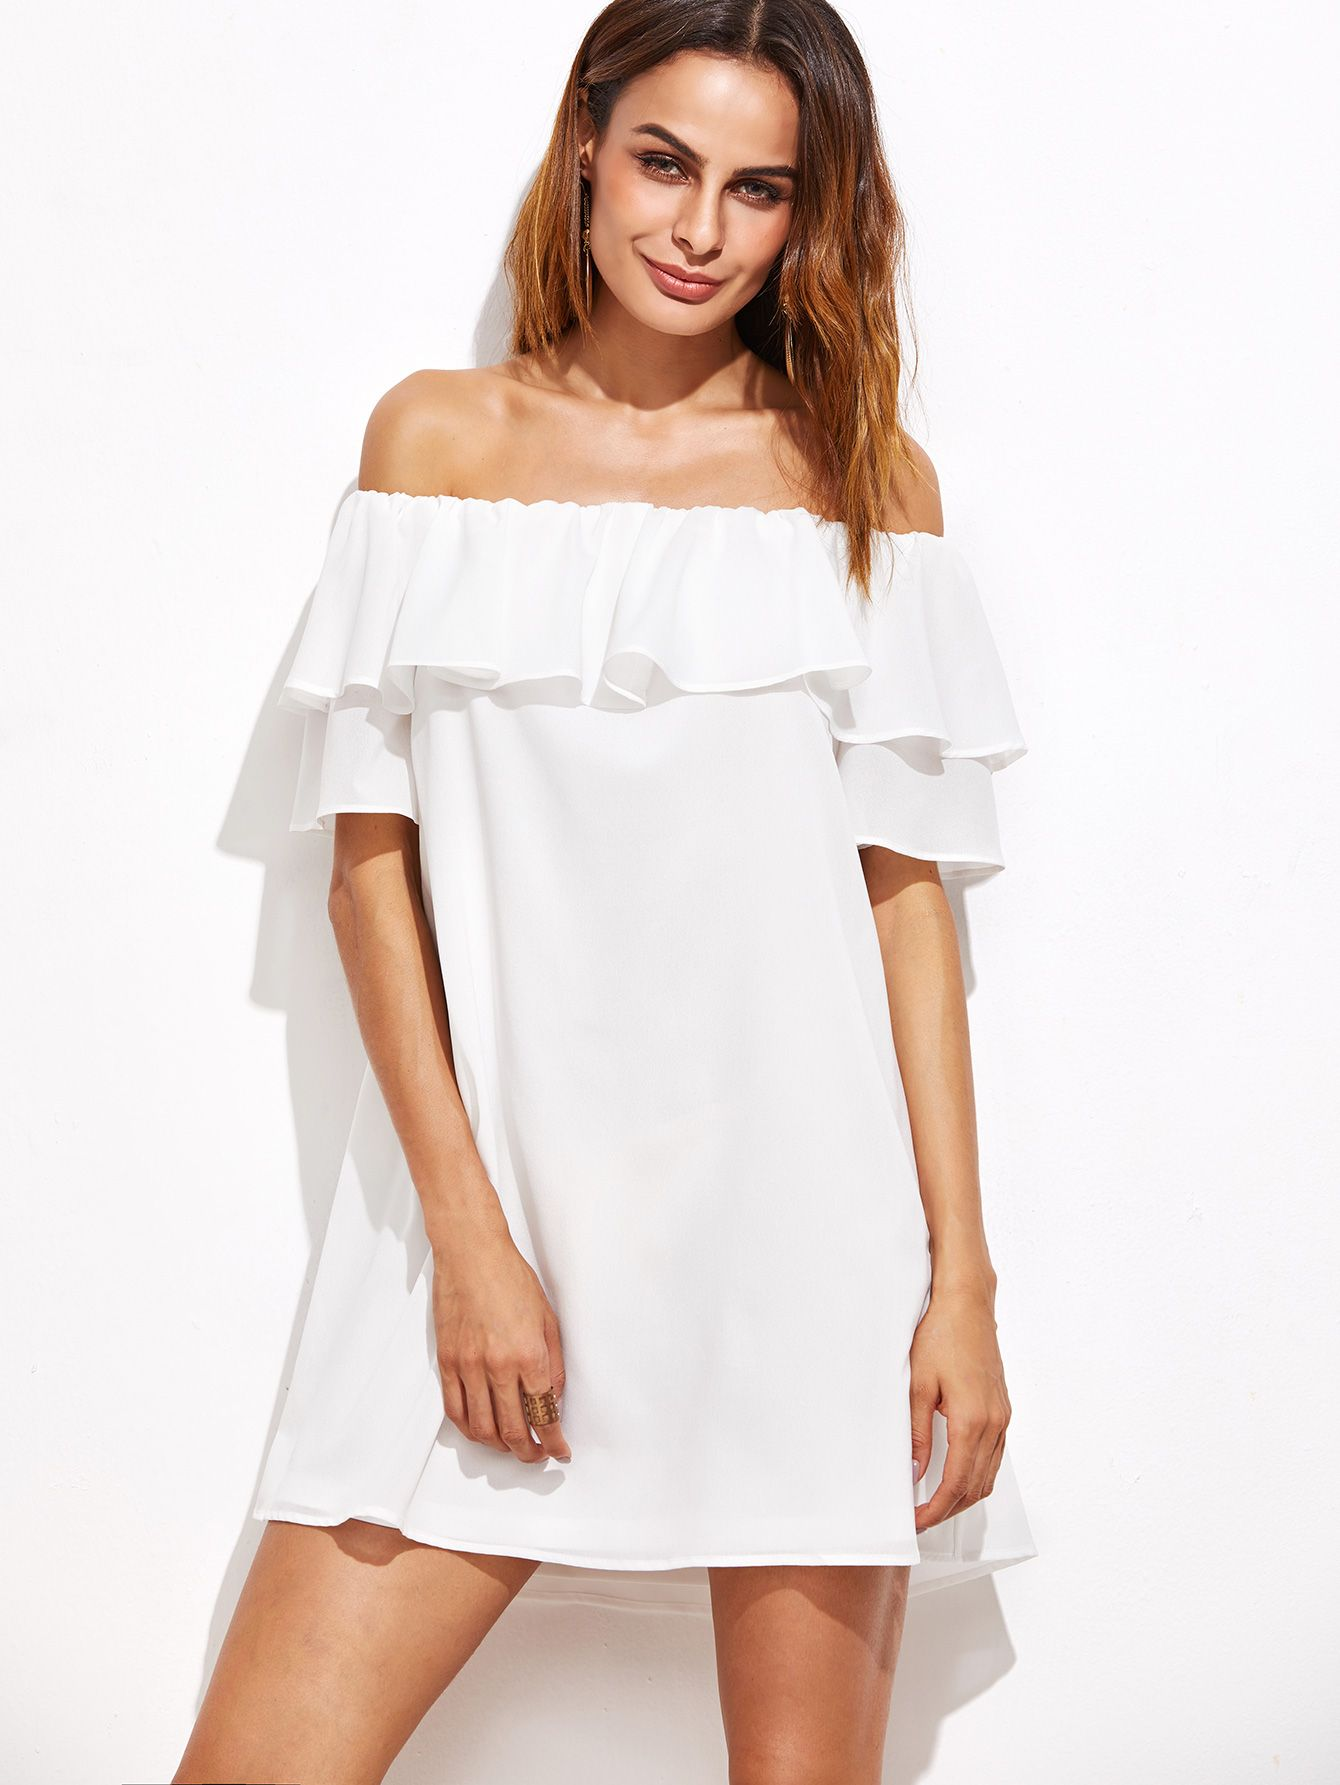 93317586ff Shop White Off The Shoulder Ruffle Dress online. SheIn offers White Off The  Shoulder Ruffle Dress & more to fit your fashionable needs.